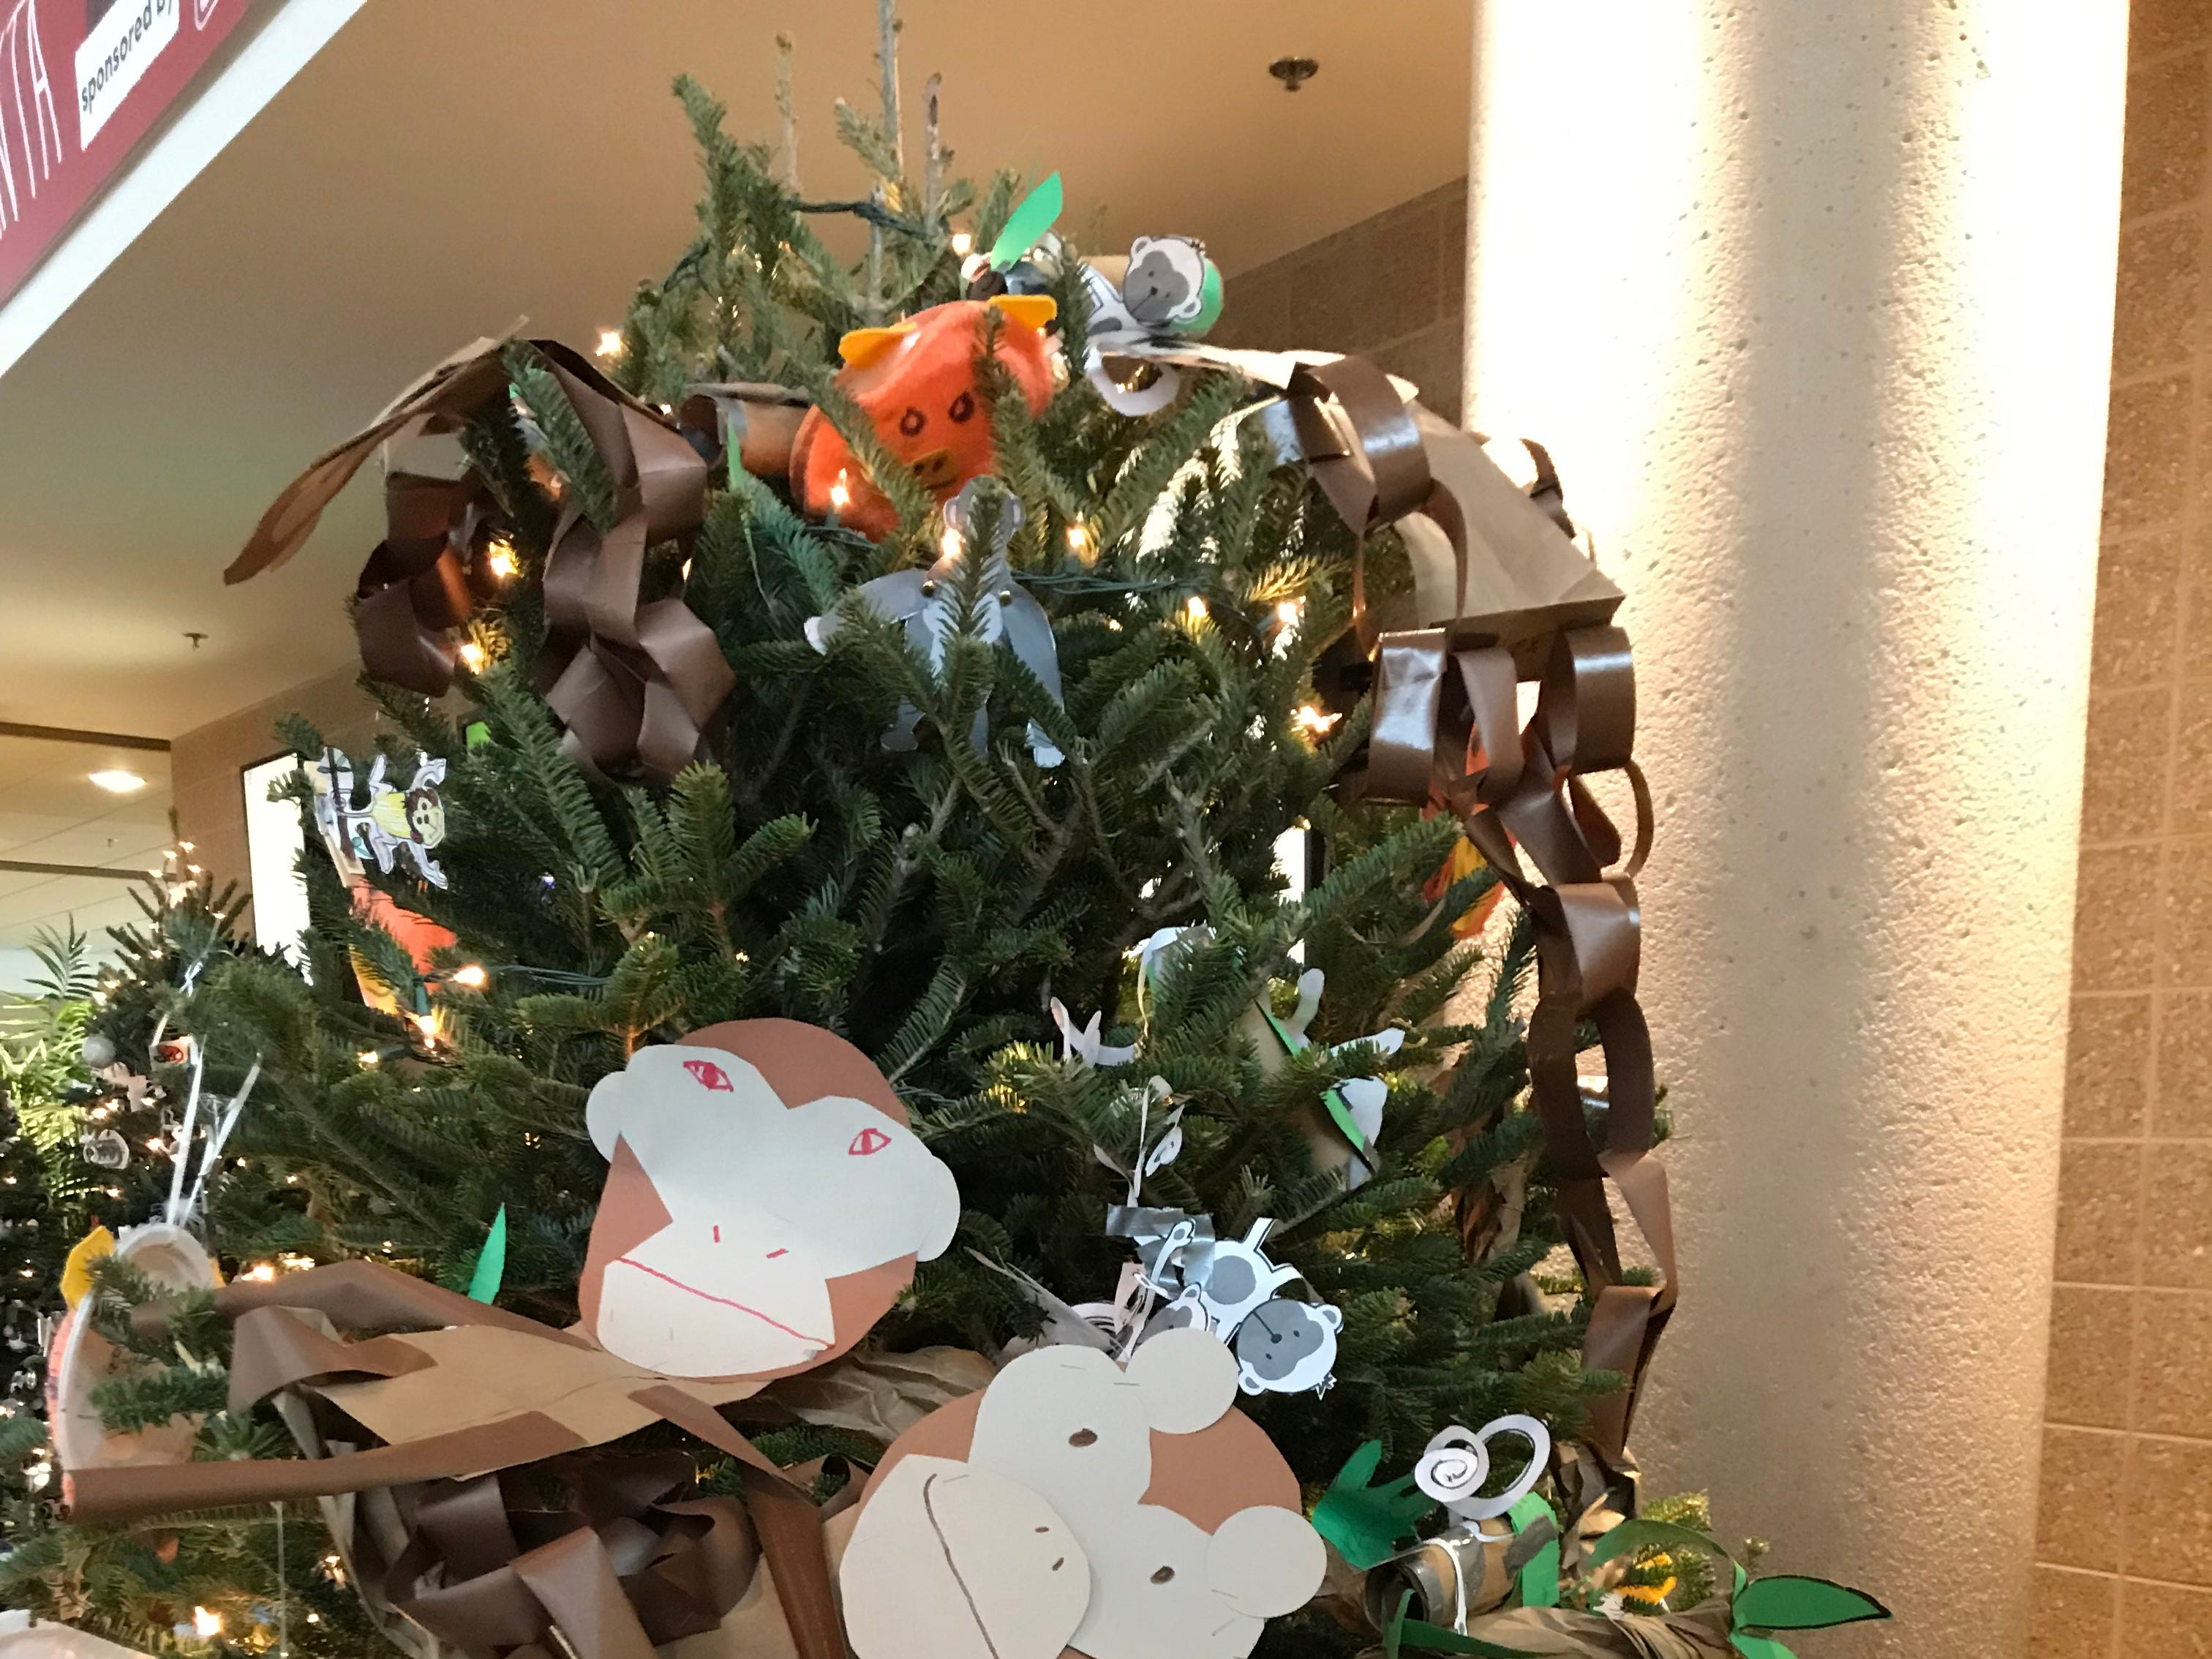 Children from Wauwatosa Catholic School decorated their tree with monkey-themed ornaments at the Milwaukee County Zoo.